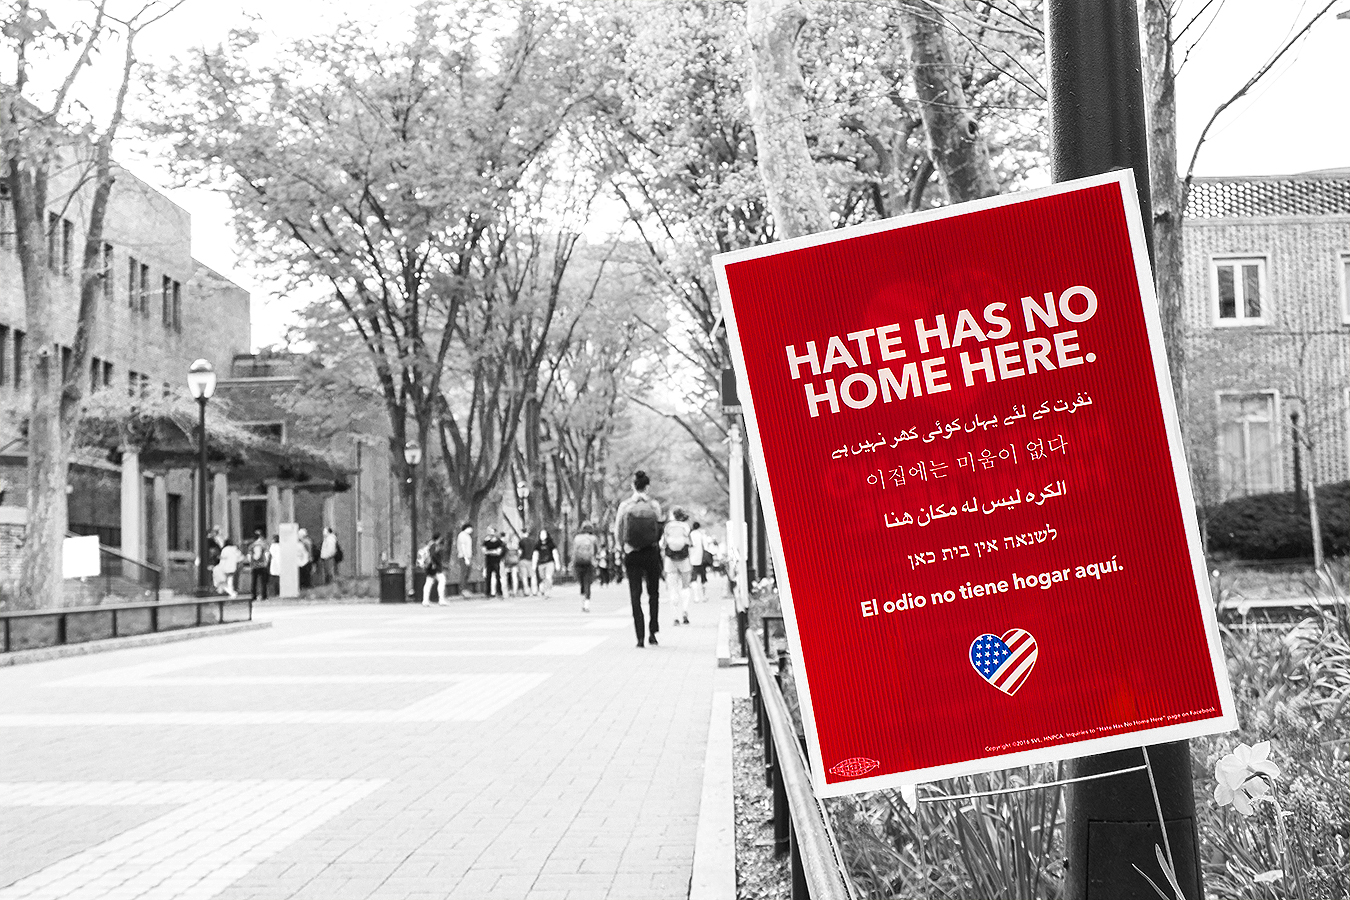 Janelle_Tong_Photography_Tony_Ward_Studio_Political_Project_UPenn_2_Fight_Hate_with_Love_Locust_Walk_Black_and_White_Red